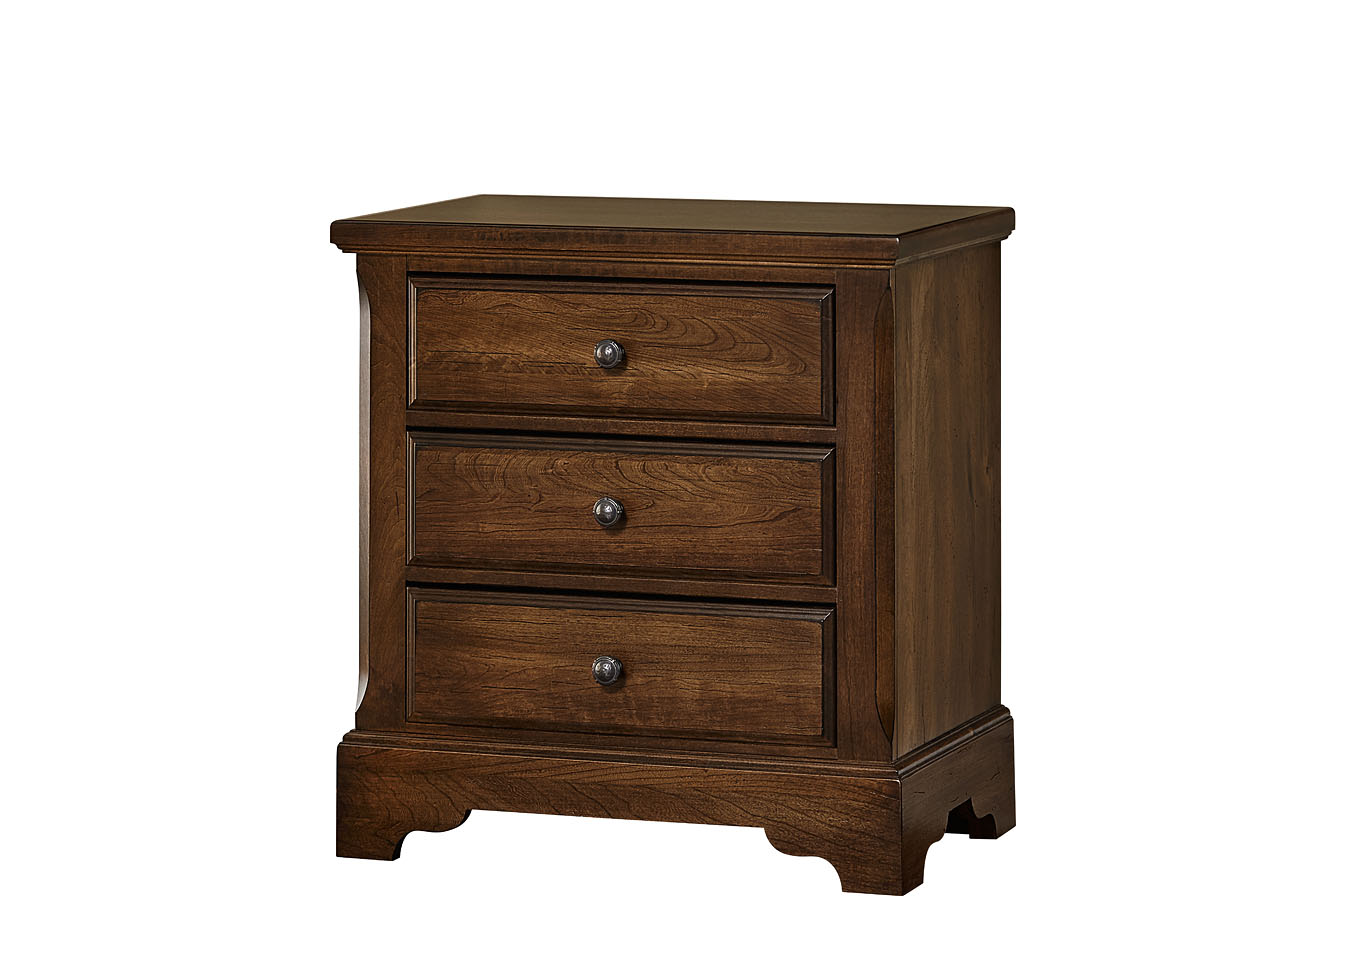 101 - Artisan Choices Rustic Cherry Villa Night Stand - 3 Drawer,Vaughan-Bassett